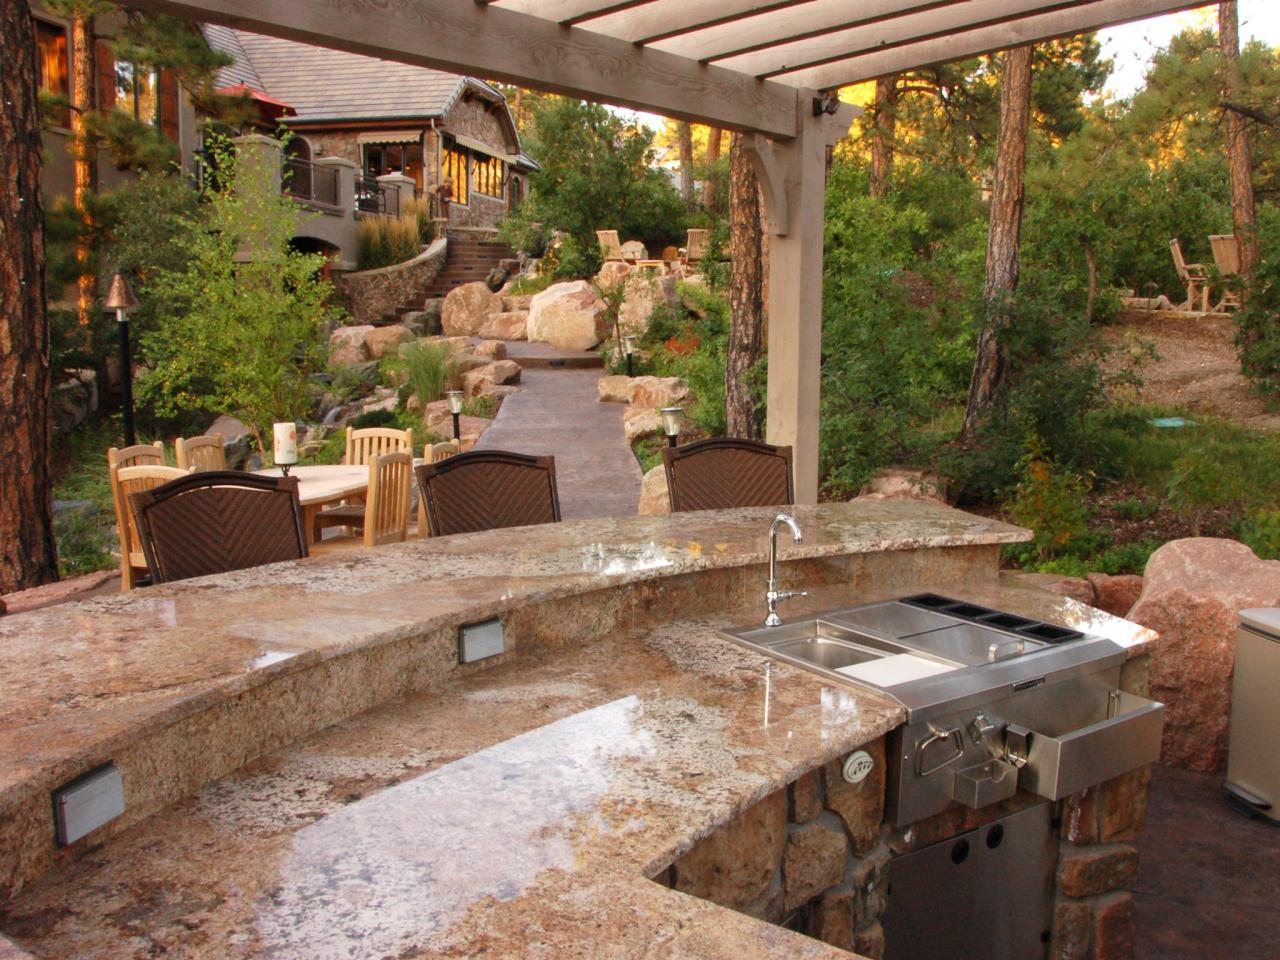 Outdoor Grill Design Ideas outdoor grill design ideas affordable top outdoor kitchen design Outdoor Kitchen Plans